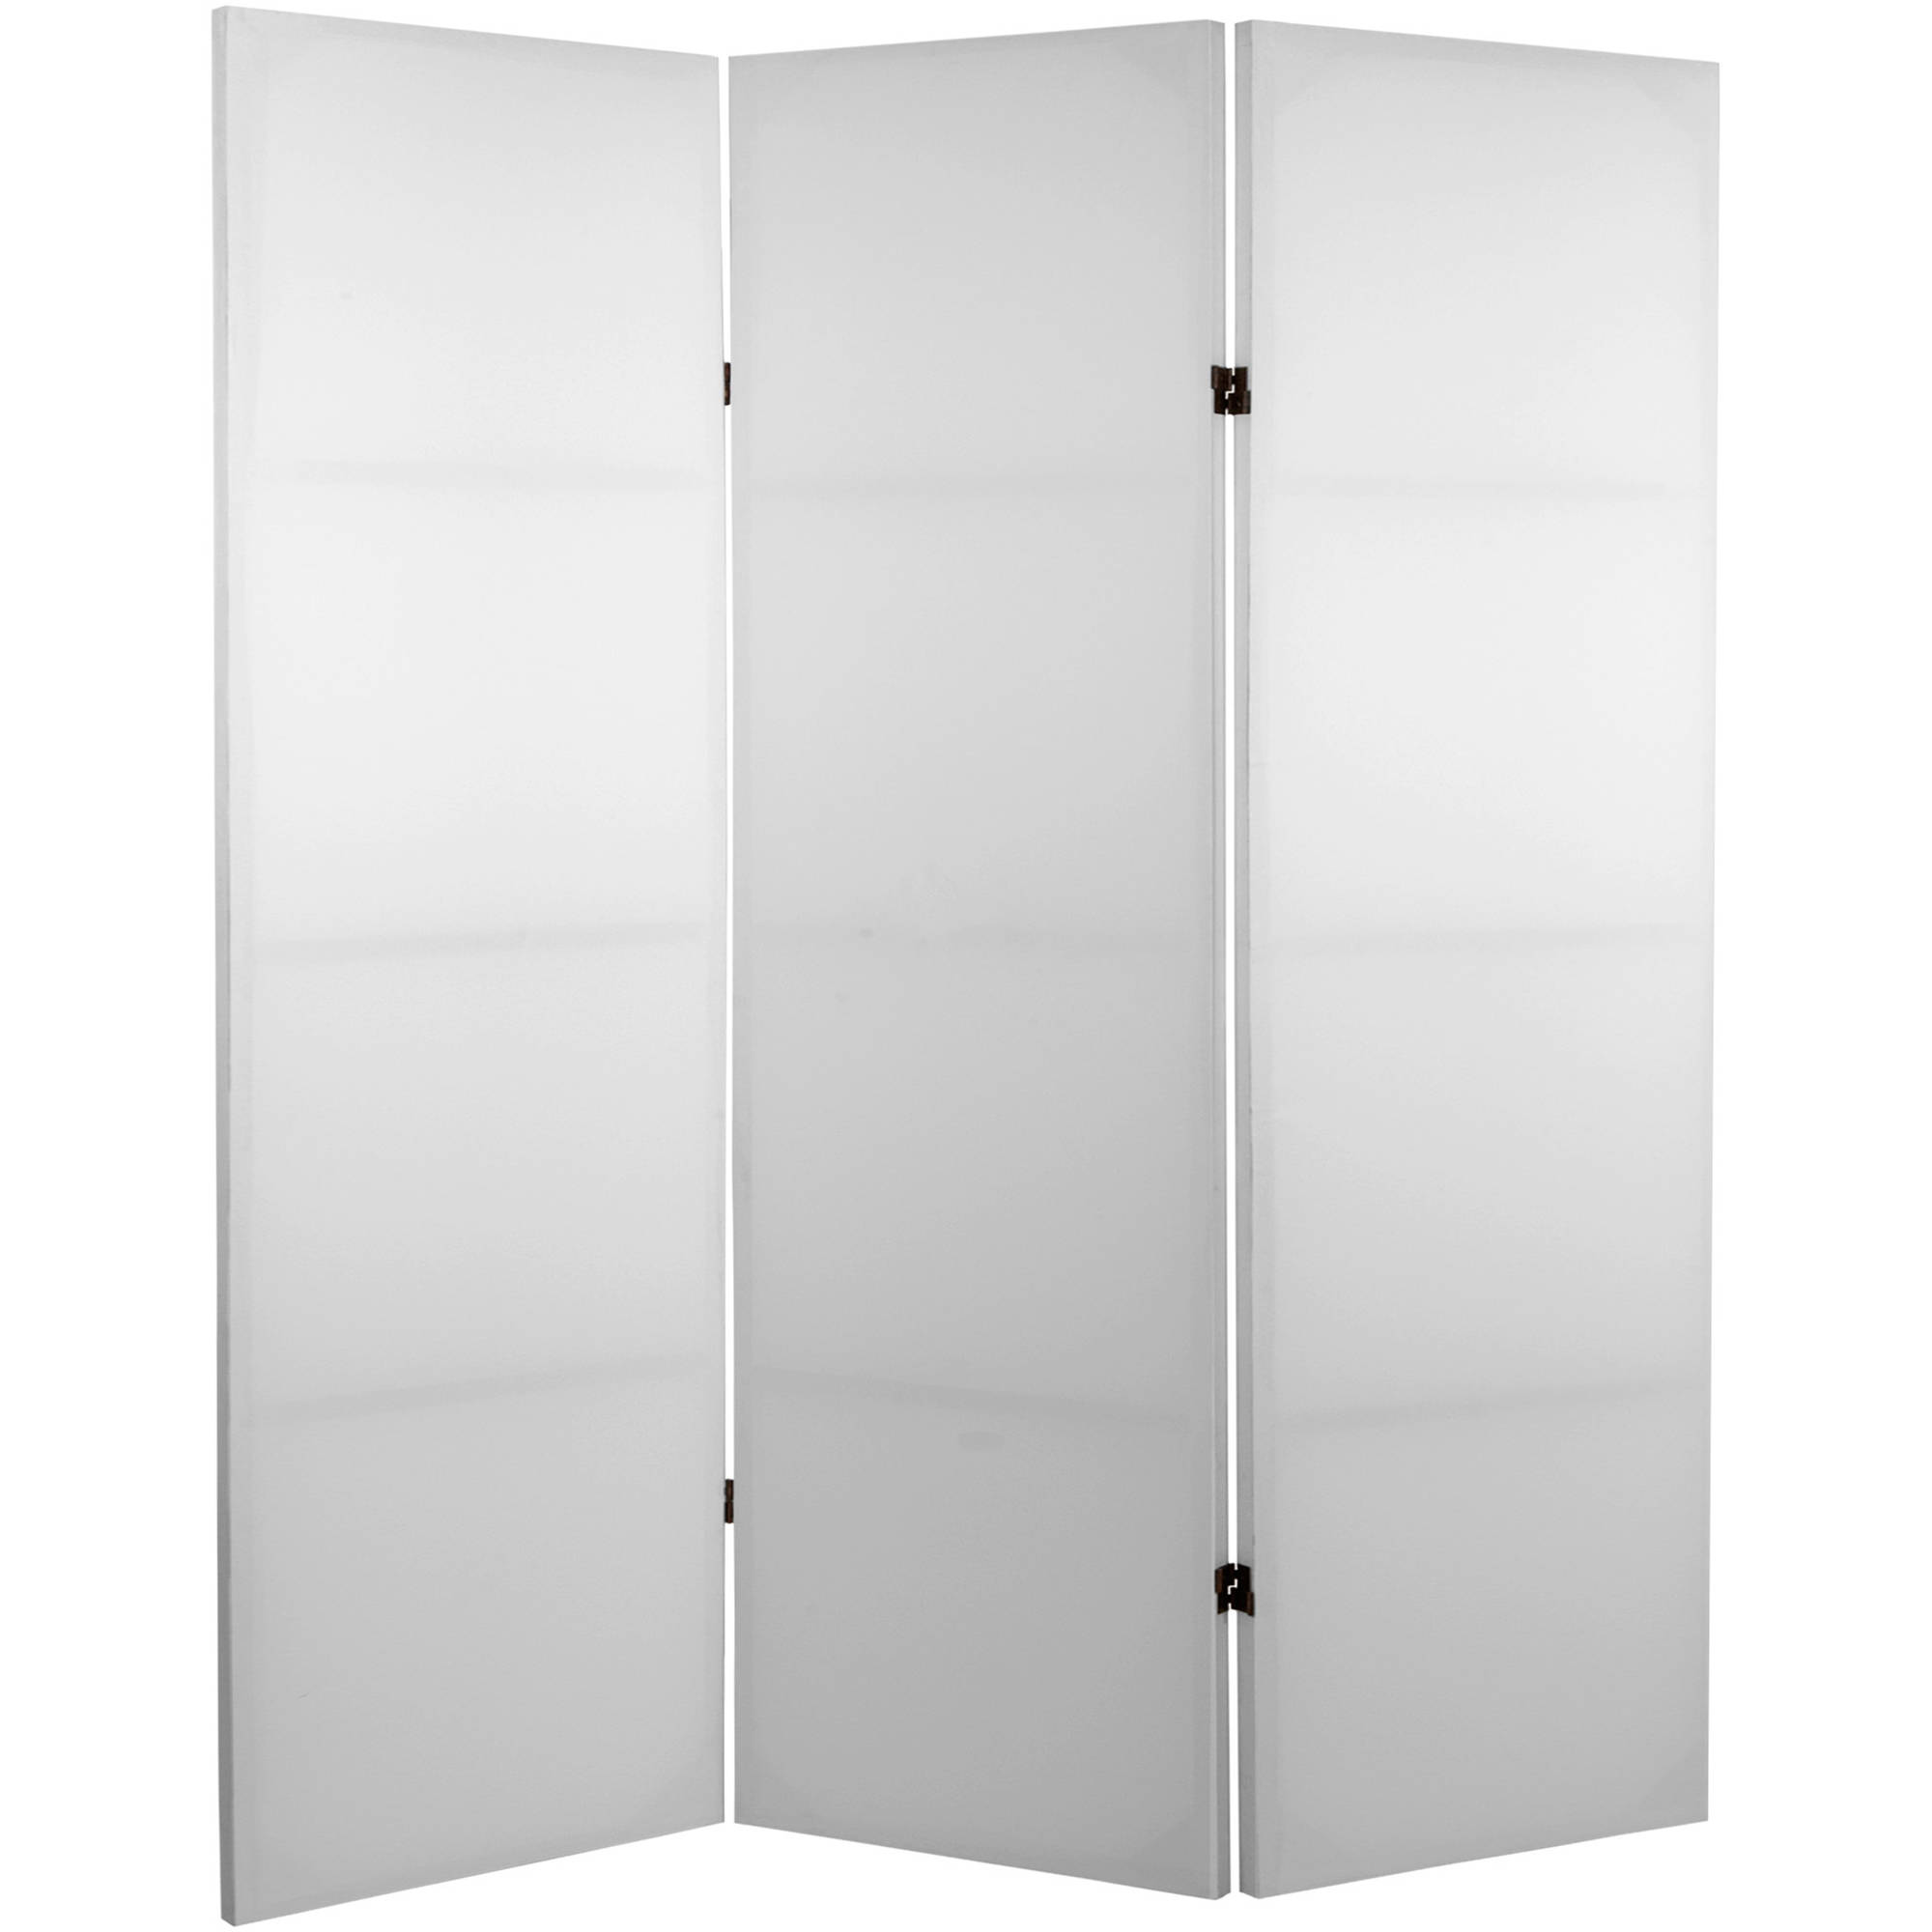 oriental furniture 6 ft tall do it yourself canvas room divider white 6 panel